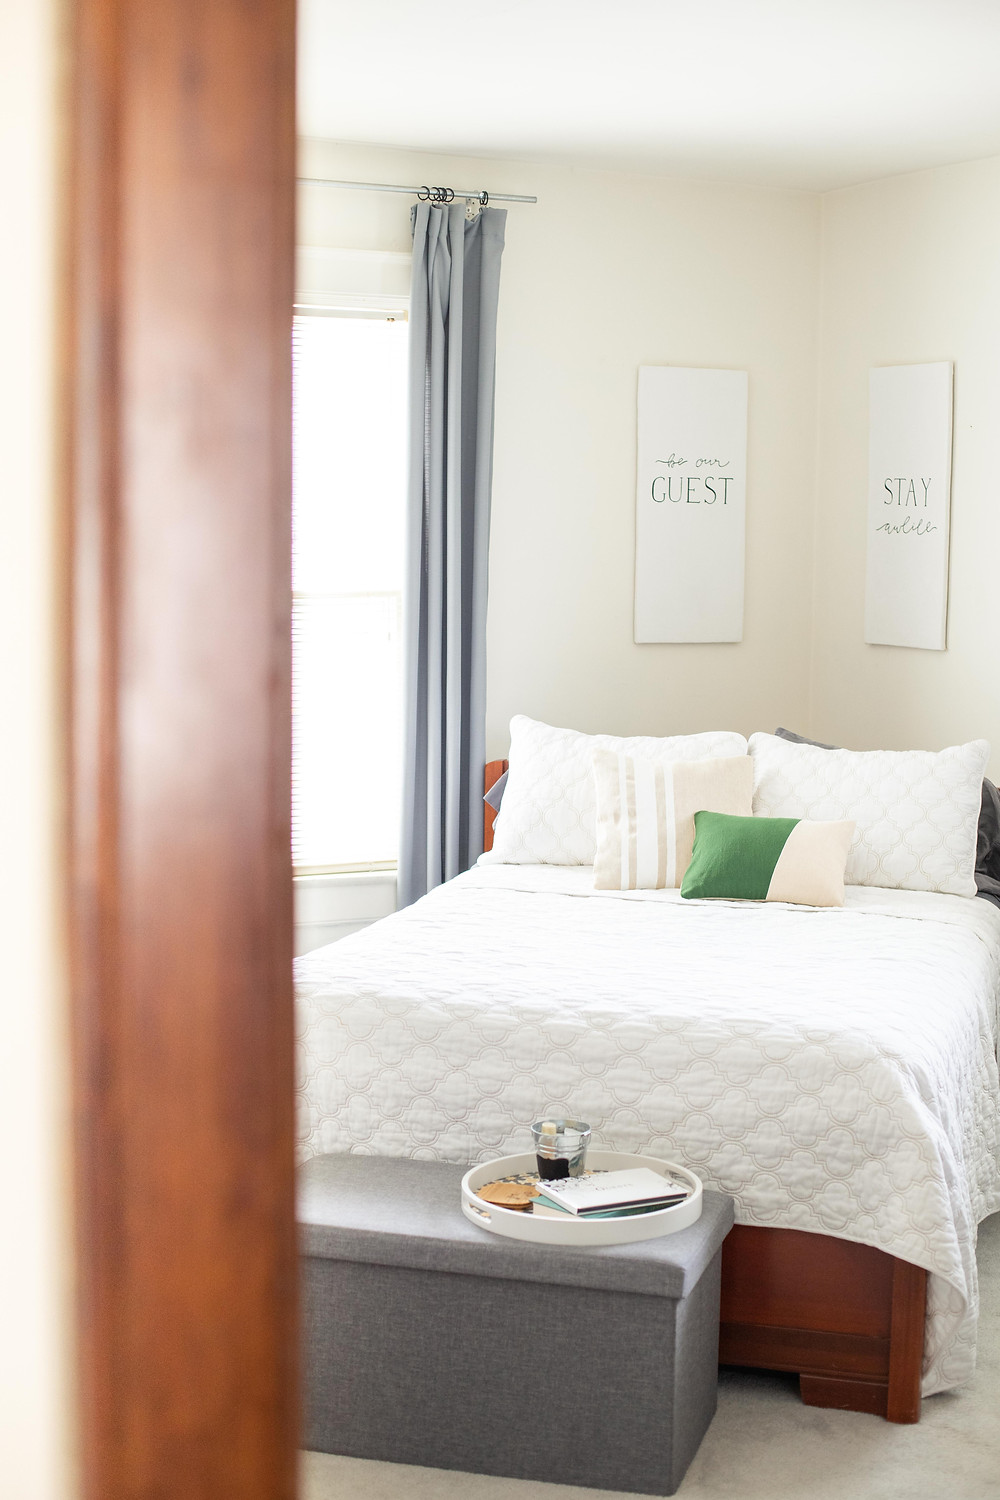 Home bedroom decorations with brown and green accents and leaves